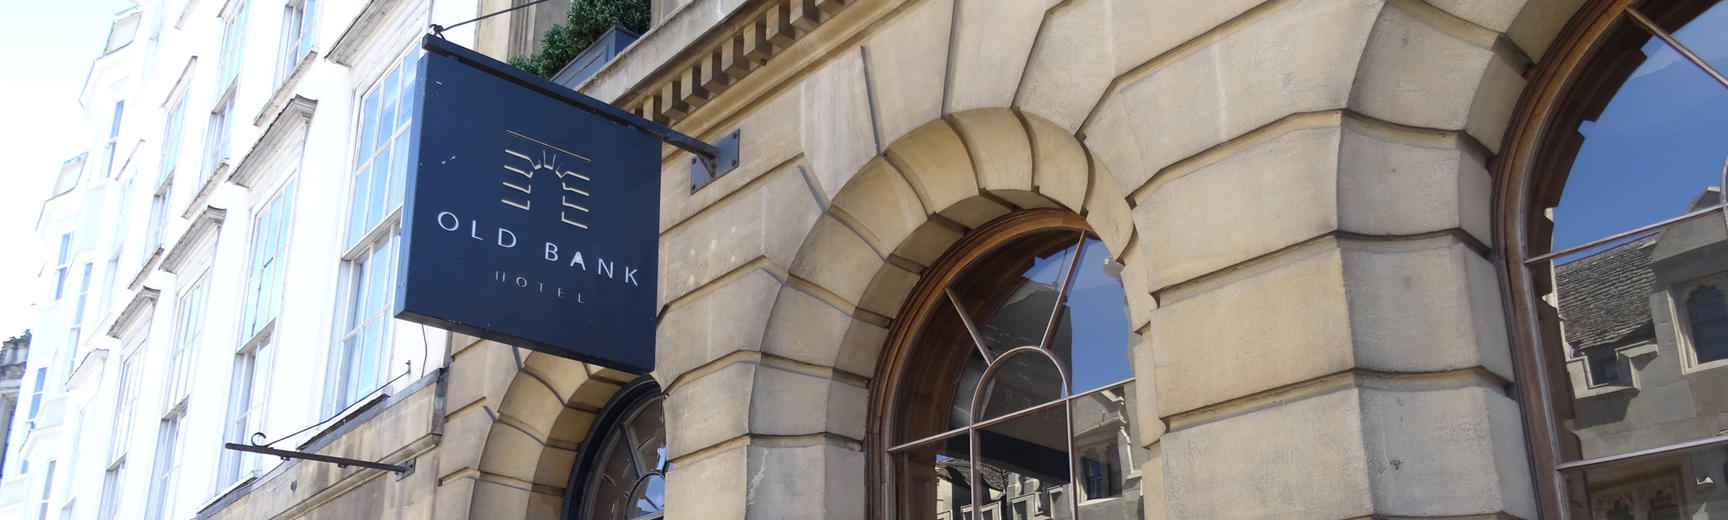 The exterior and sign of the Old Bank Hotel in Oxford